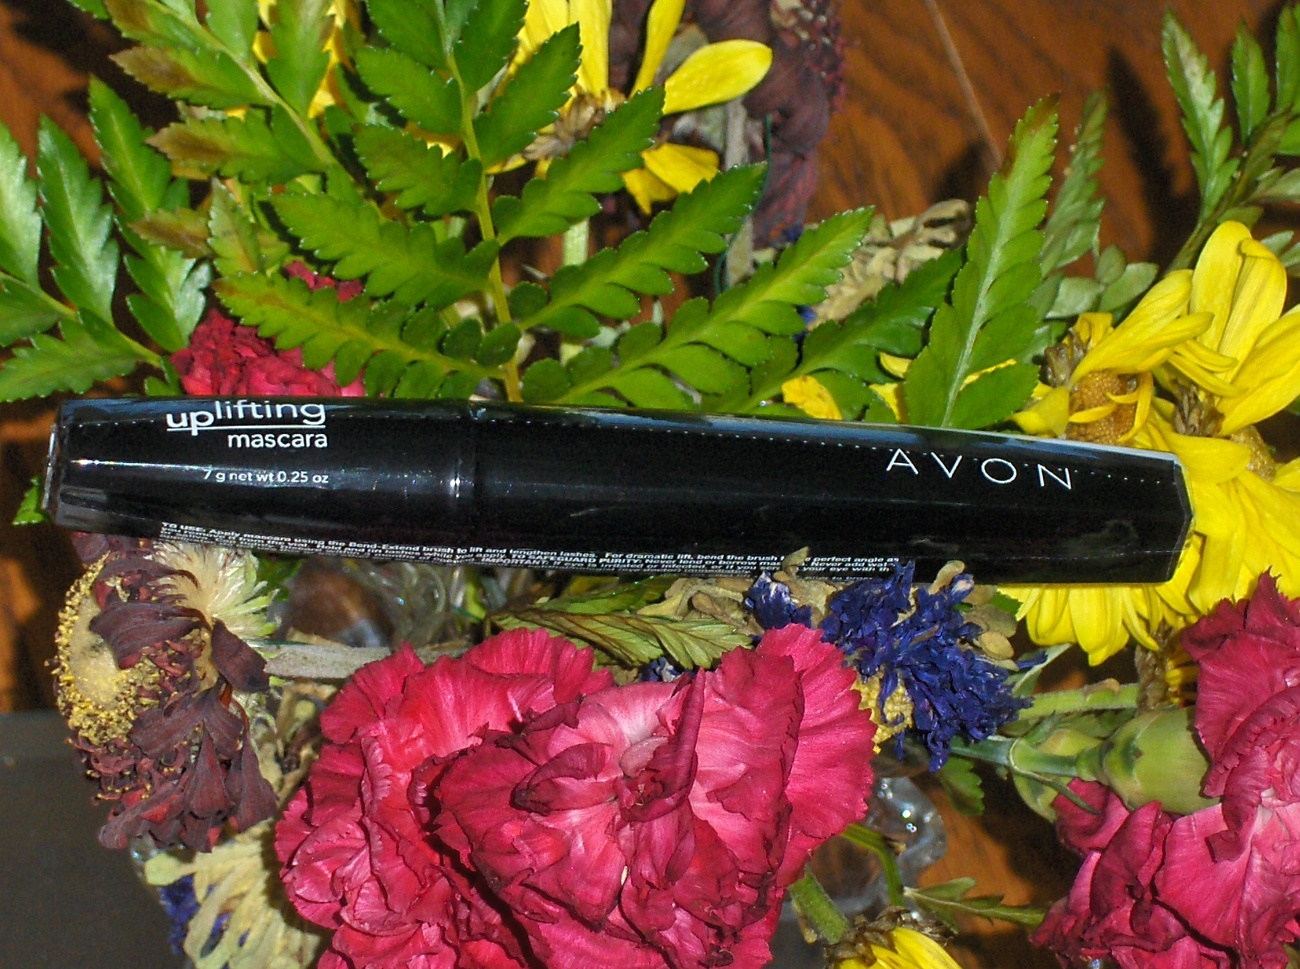 Avon Up Lifting Mascara